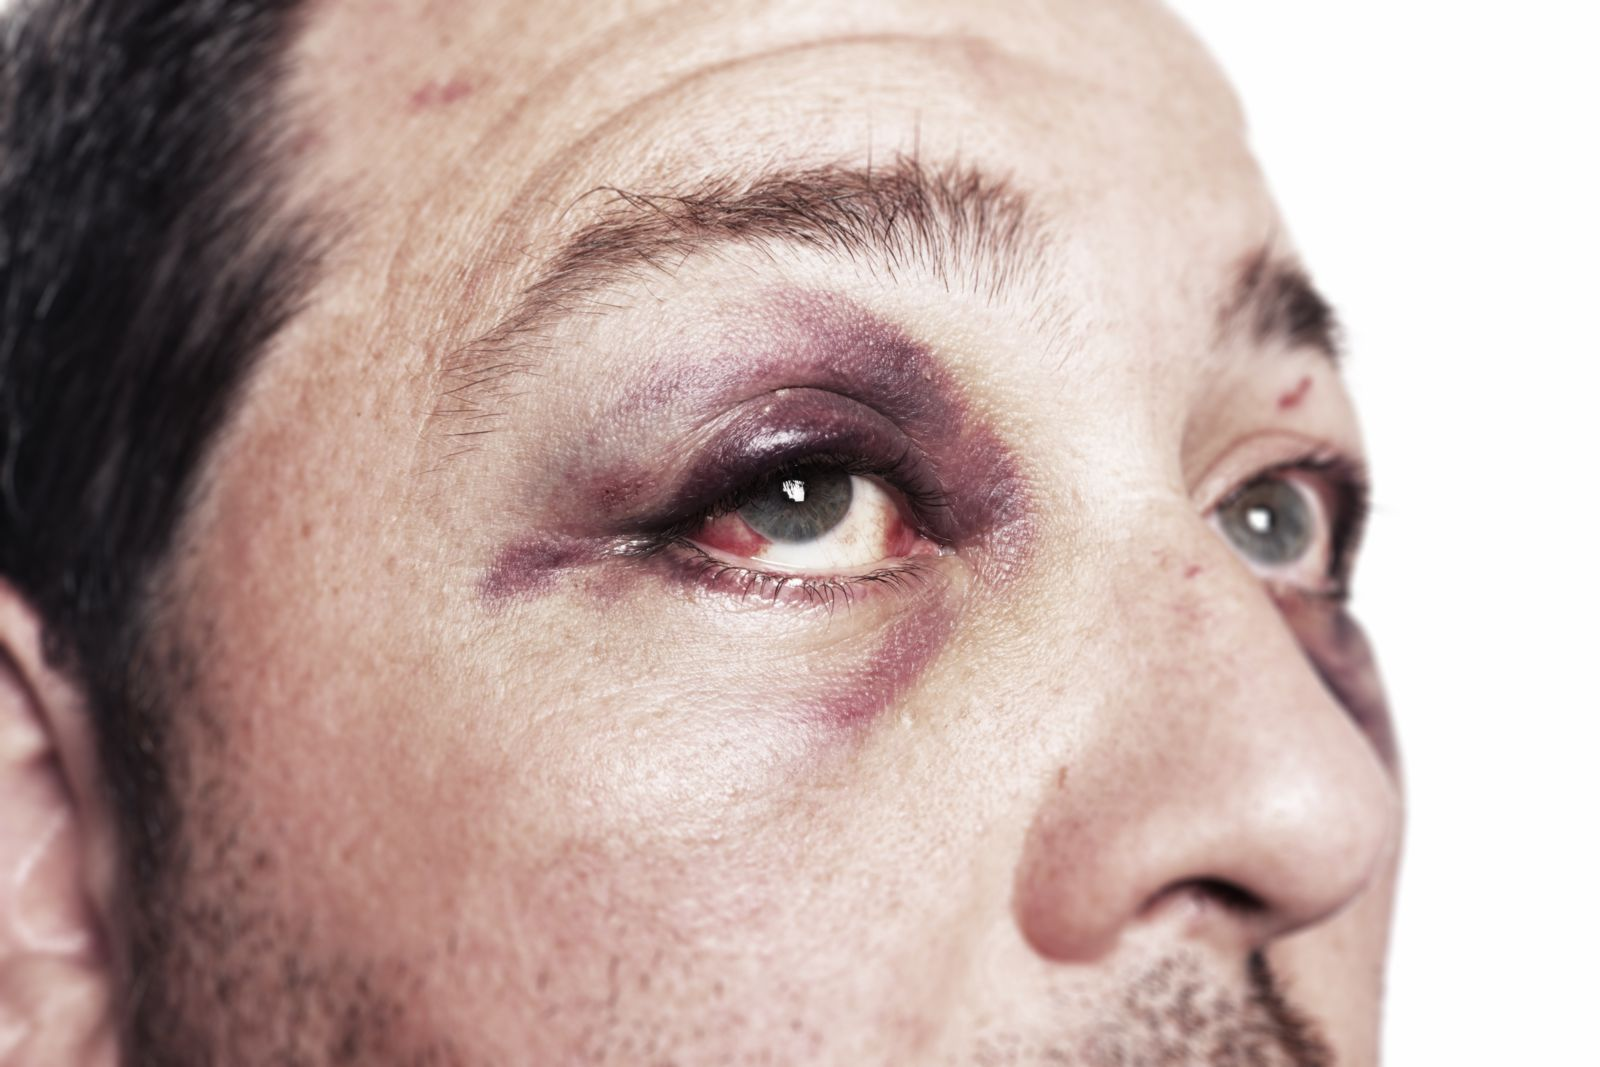 Man With Eye and Facial Injuries